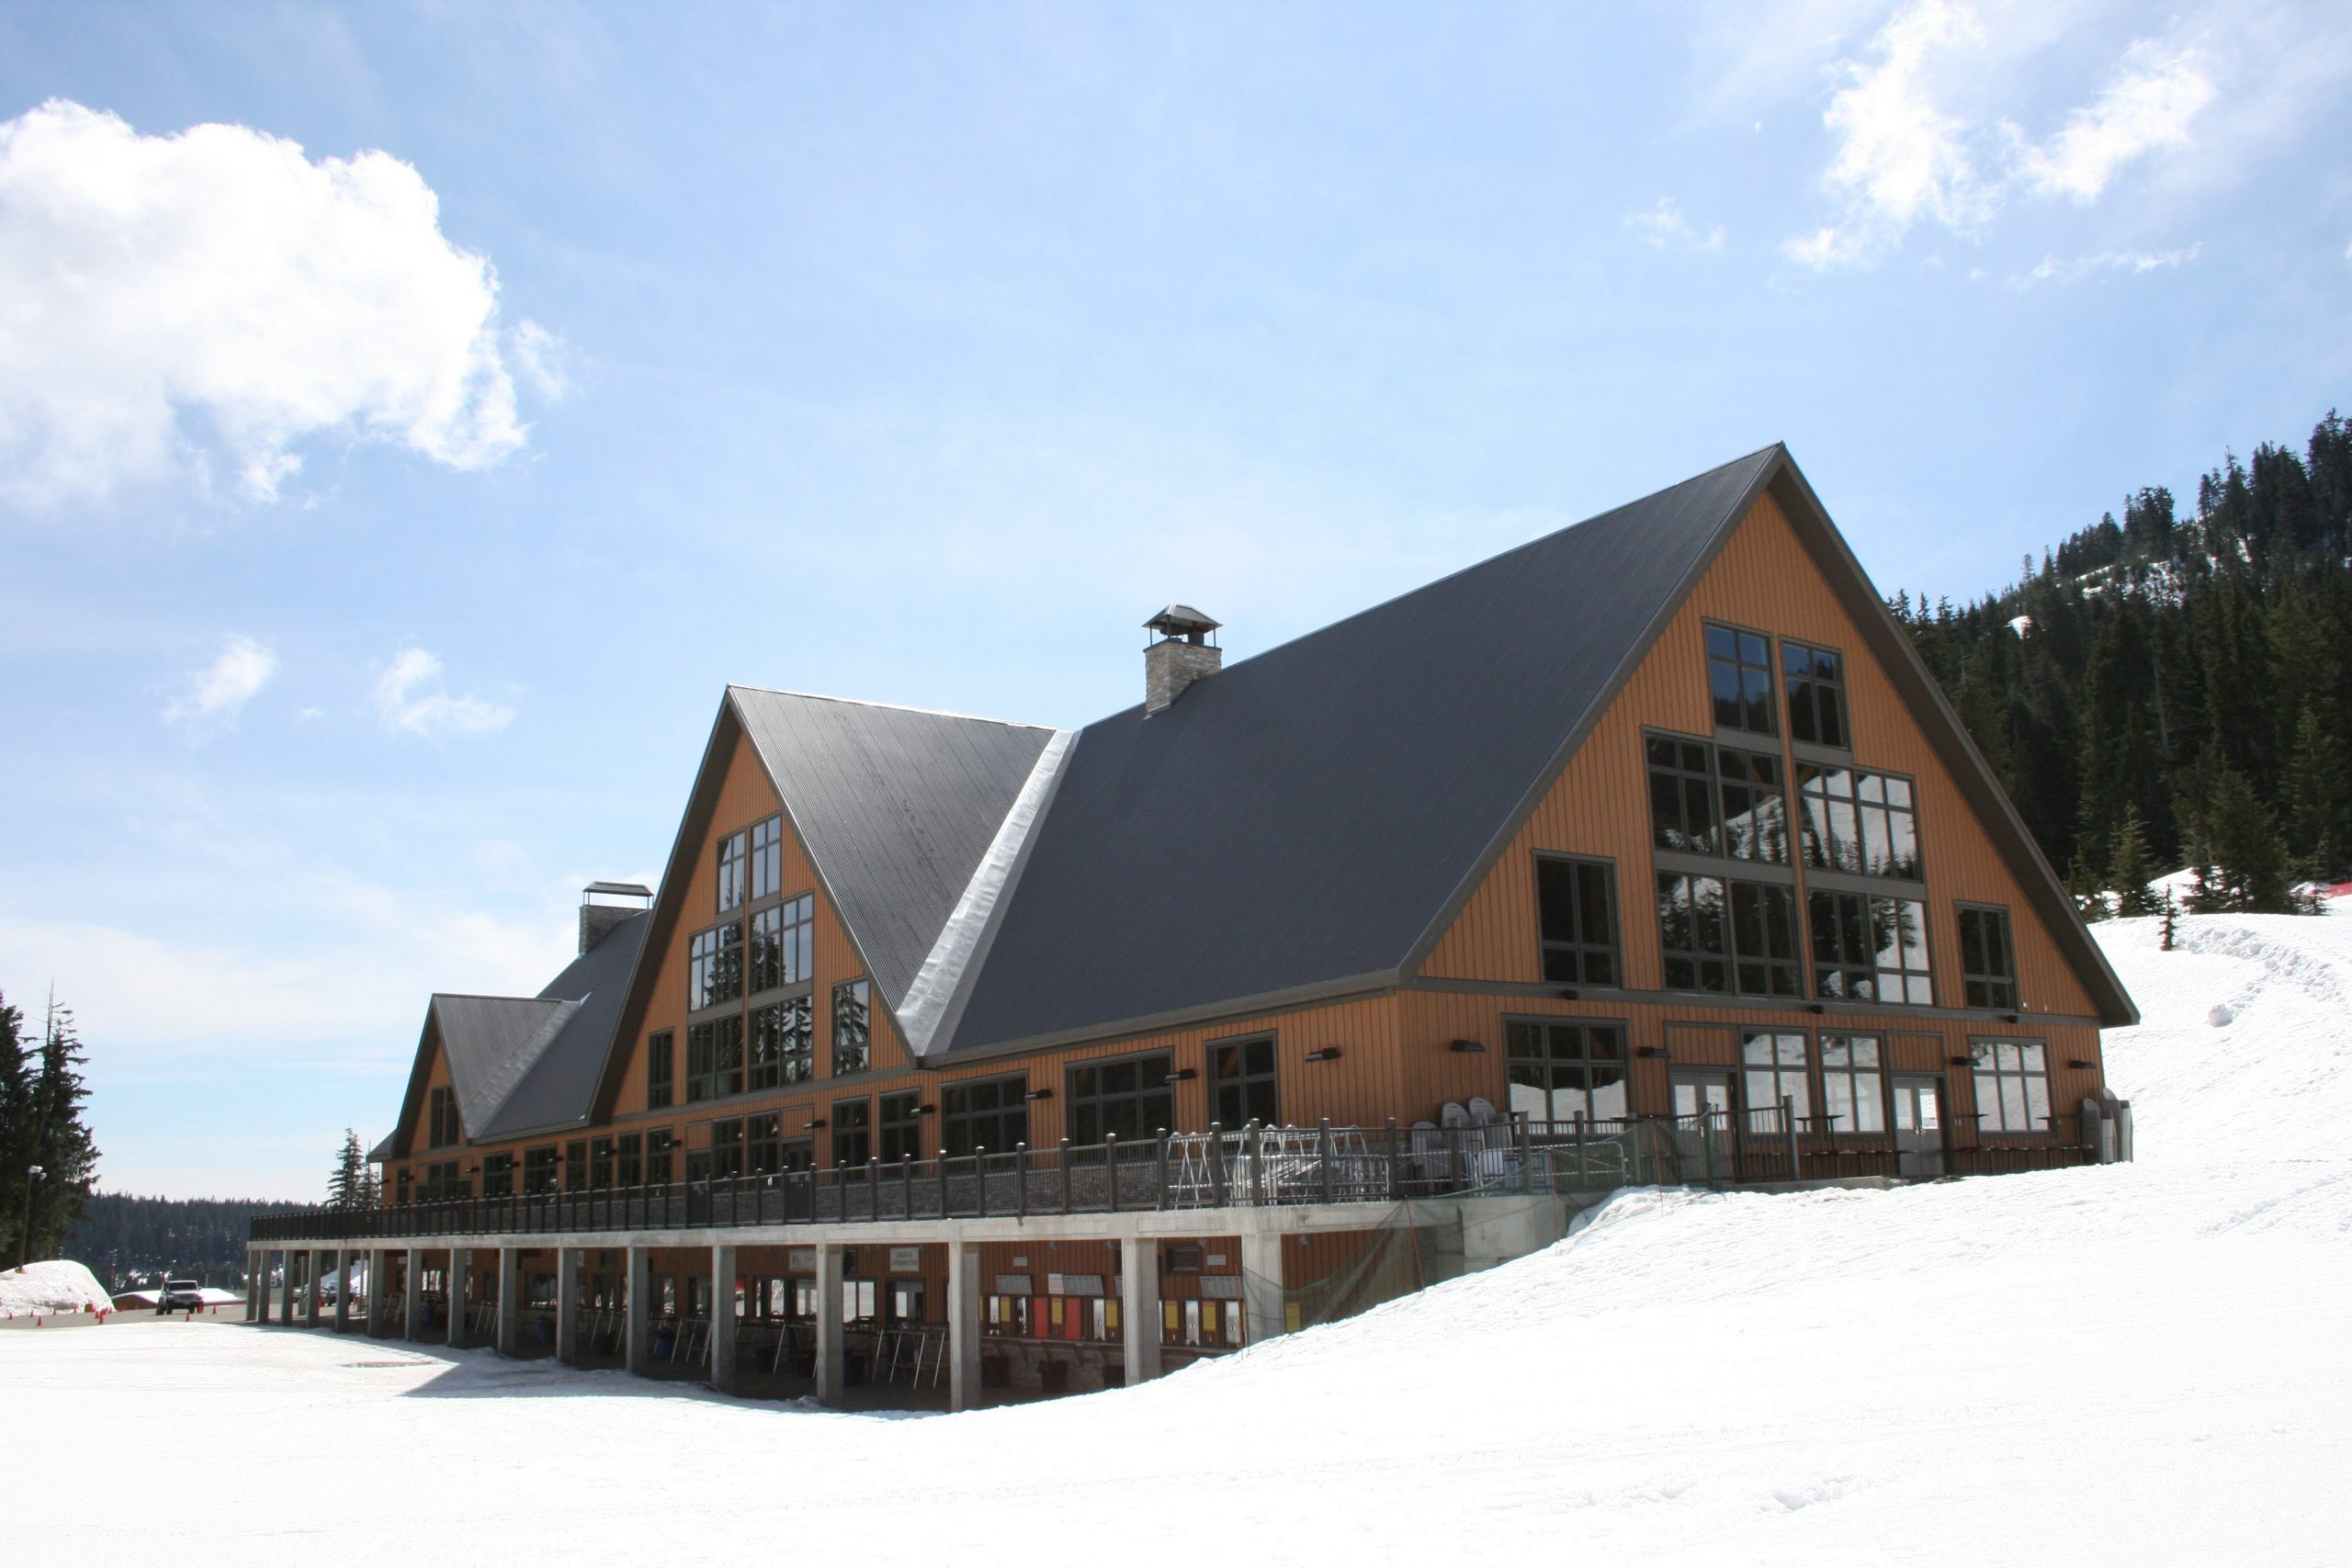 Normerica Timber Frame, Commercial Project, Cypress Mountain Day Lodge, Ski Resort, West Vancouver, British Columbia, Exterior